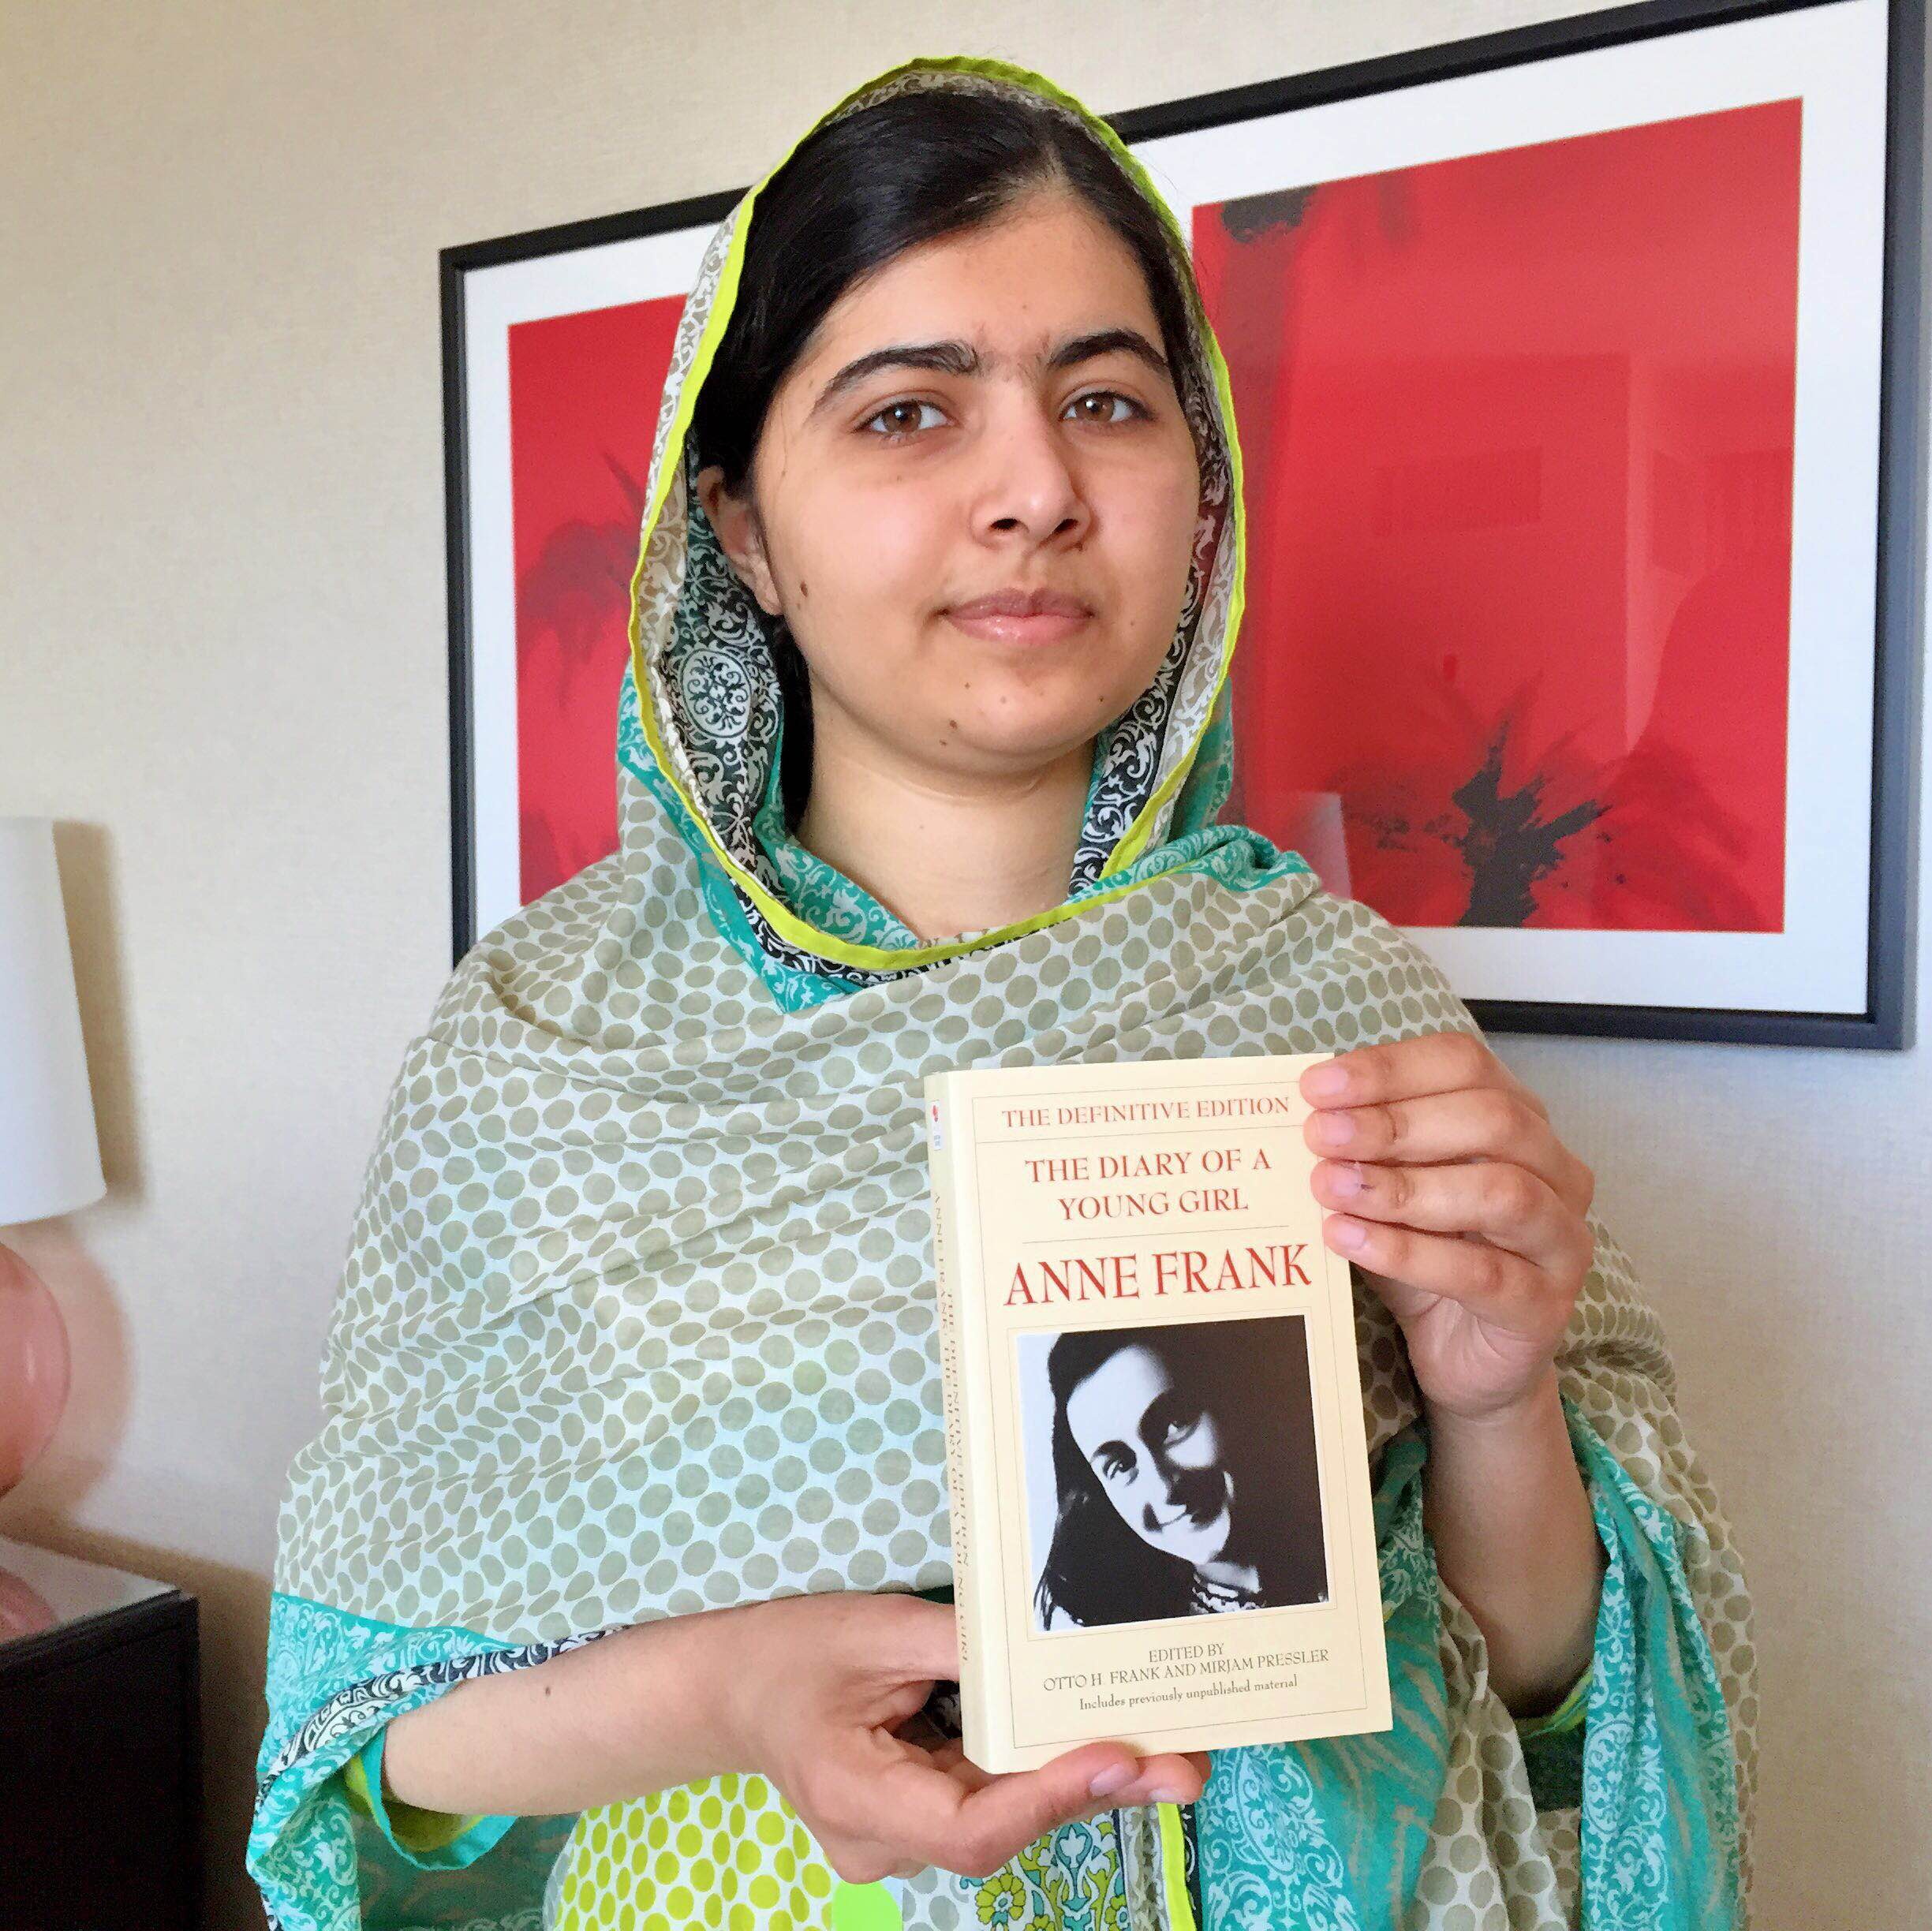 Malala's 18th birthday request: support #BooksNotBullets